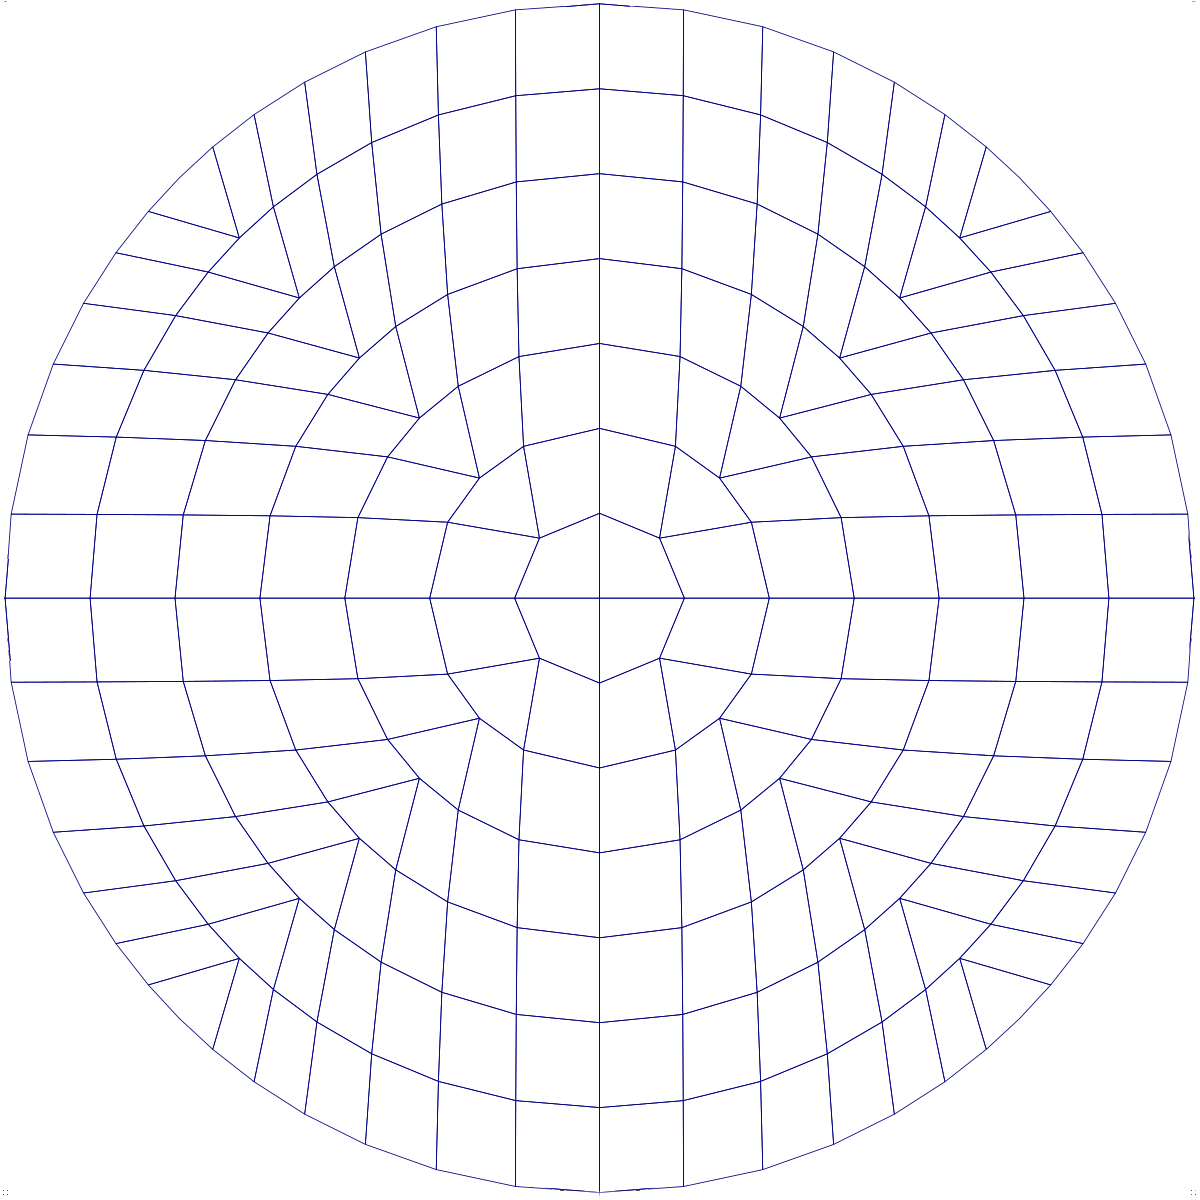 logically rectangular mesh deformed to almost spherical